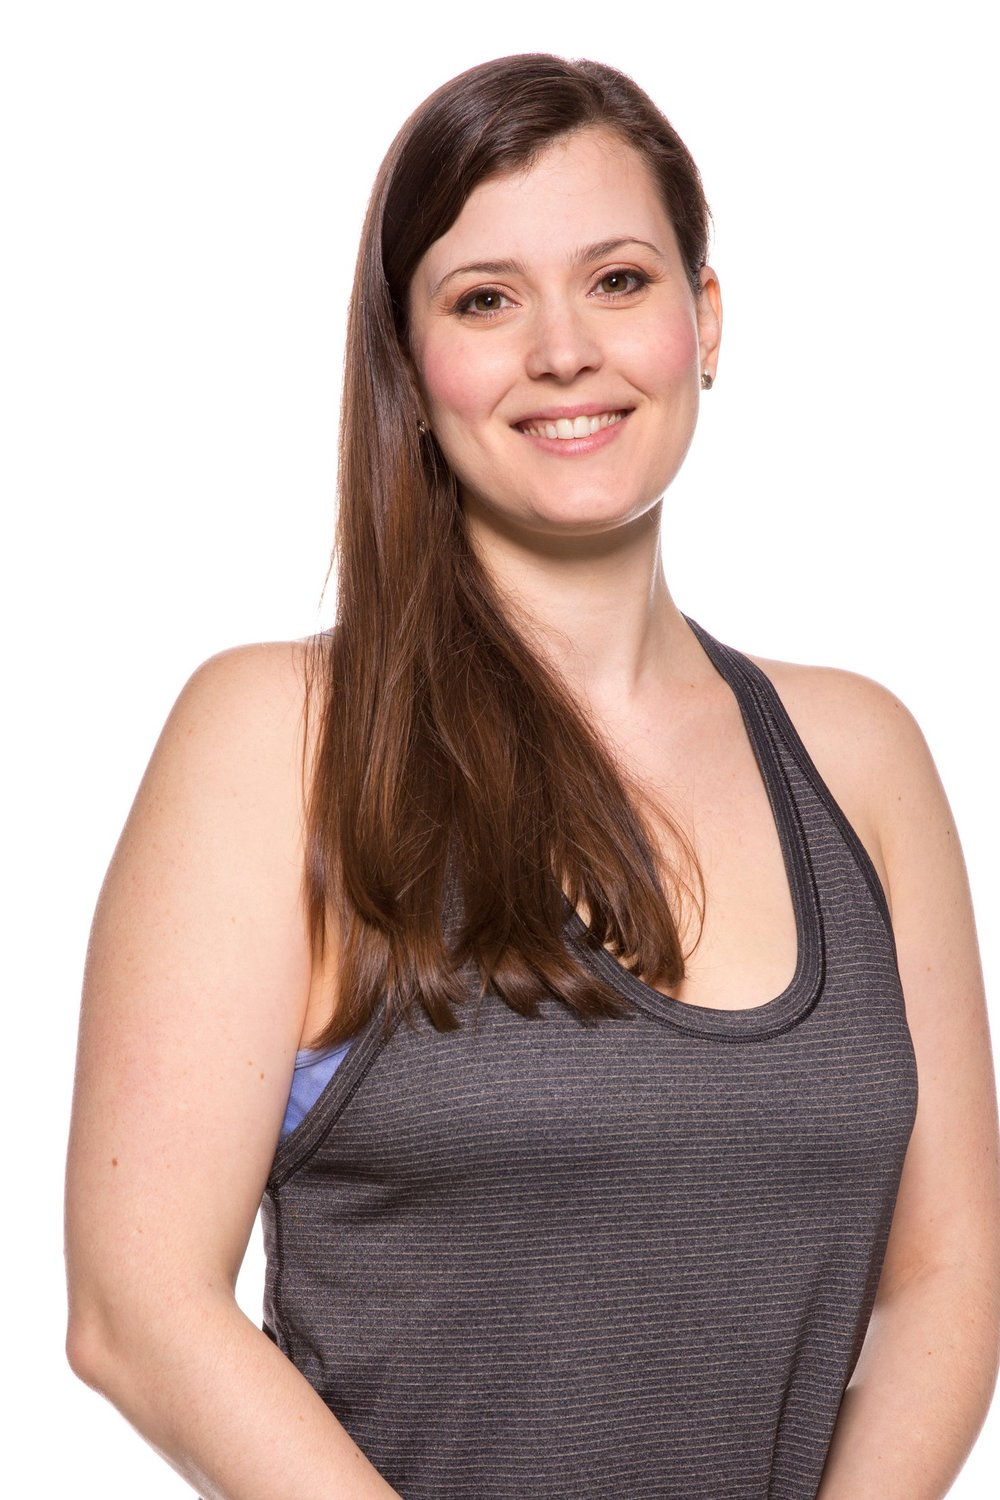 Denise D'Agostino, Yoga Teacher, Corporate Program Manager